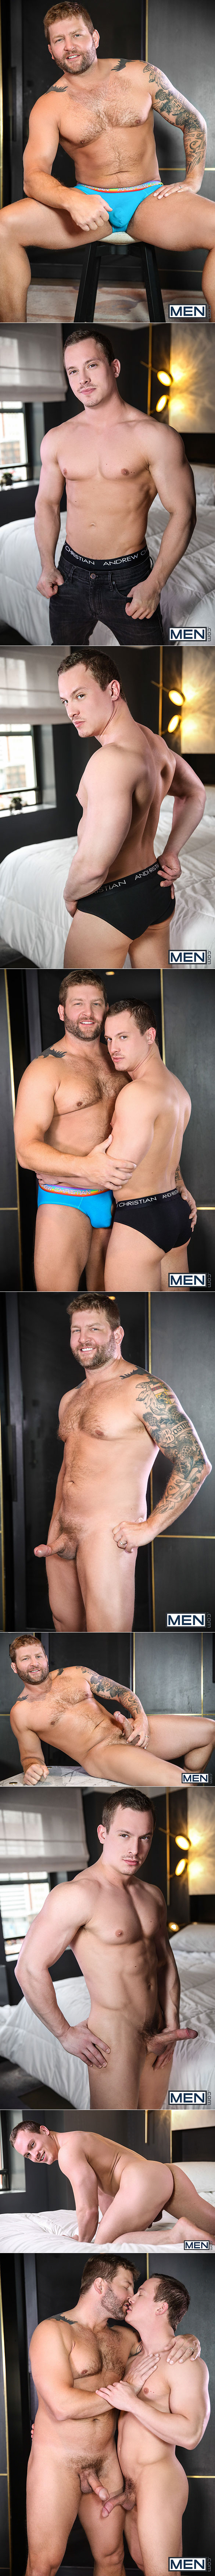 "Men.com: Tommy Regan rides Colby Jansen in ""Spymaster, Part 3"""